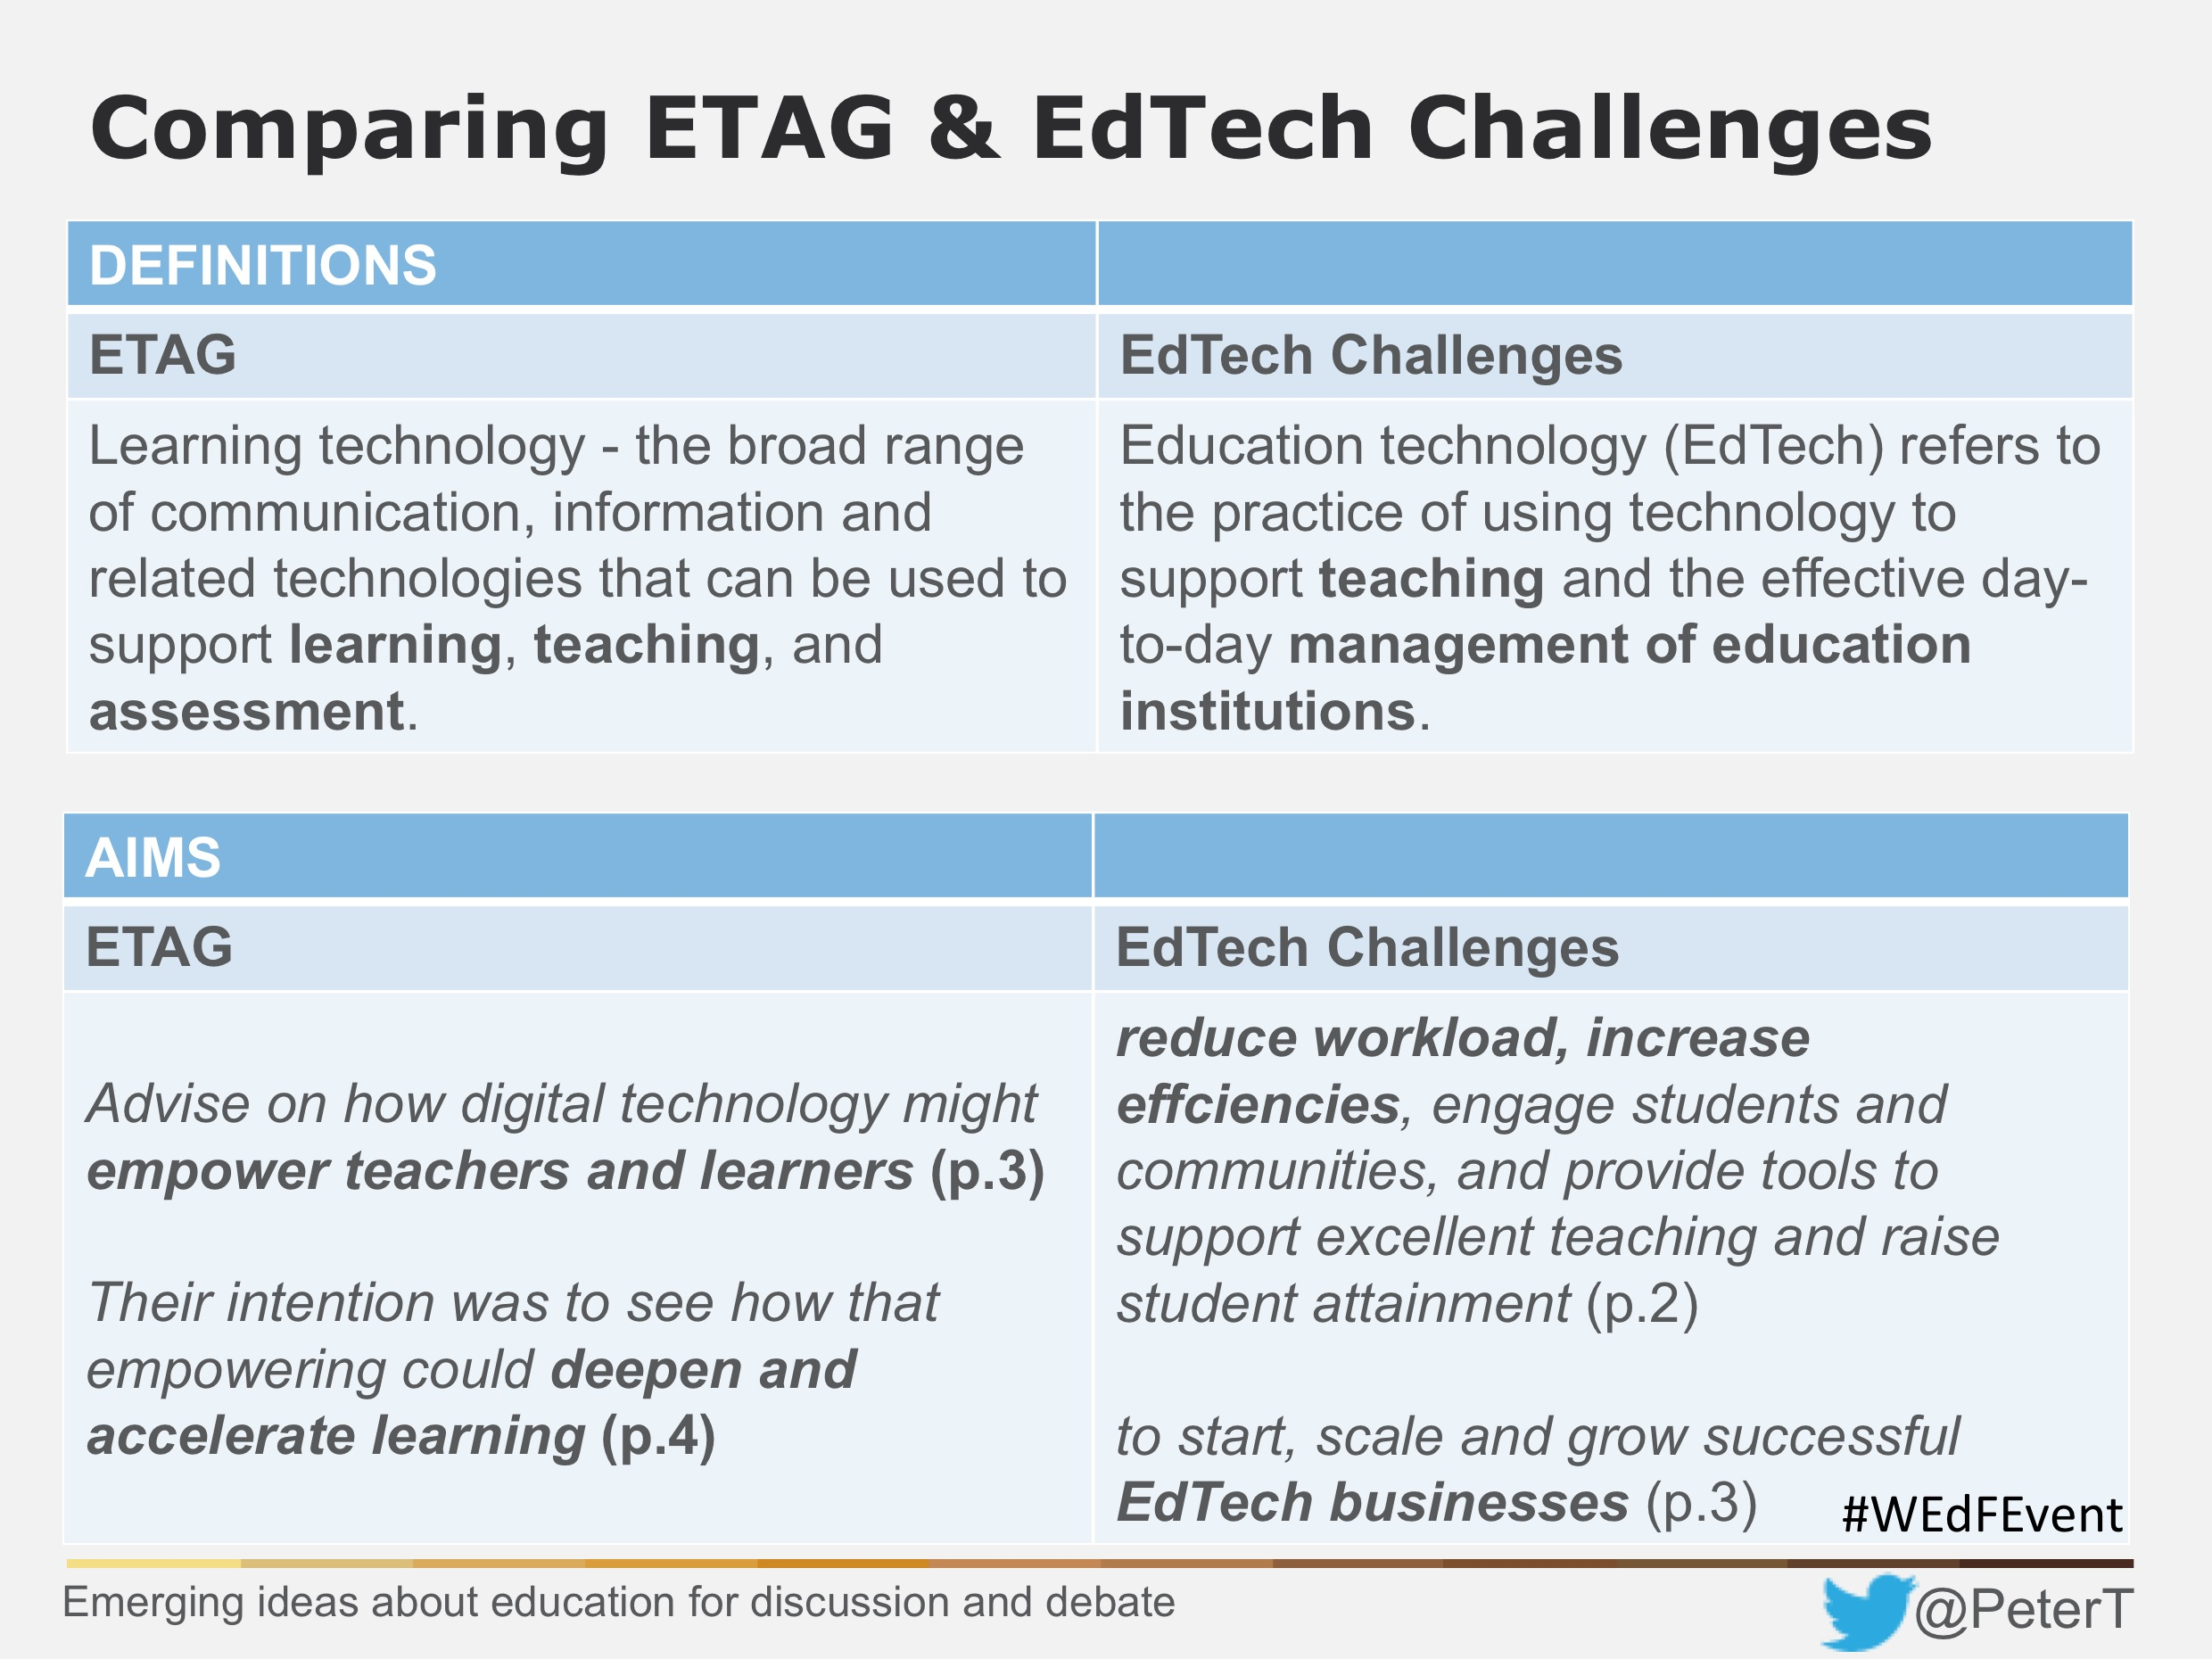 EdTech + ETAG definitions and aims